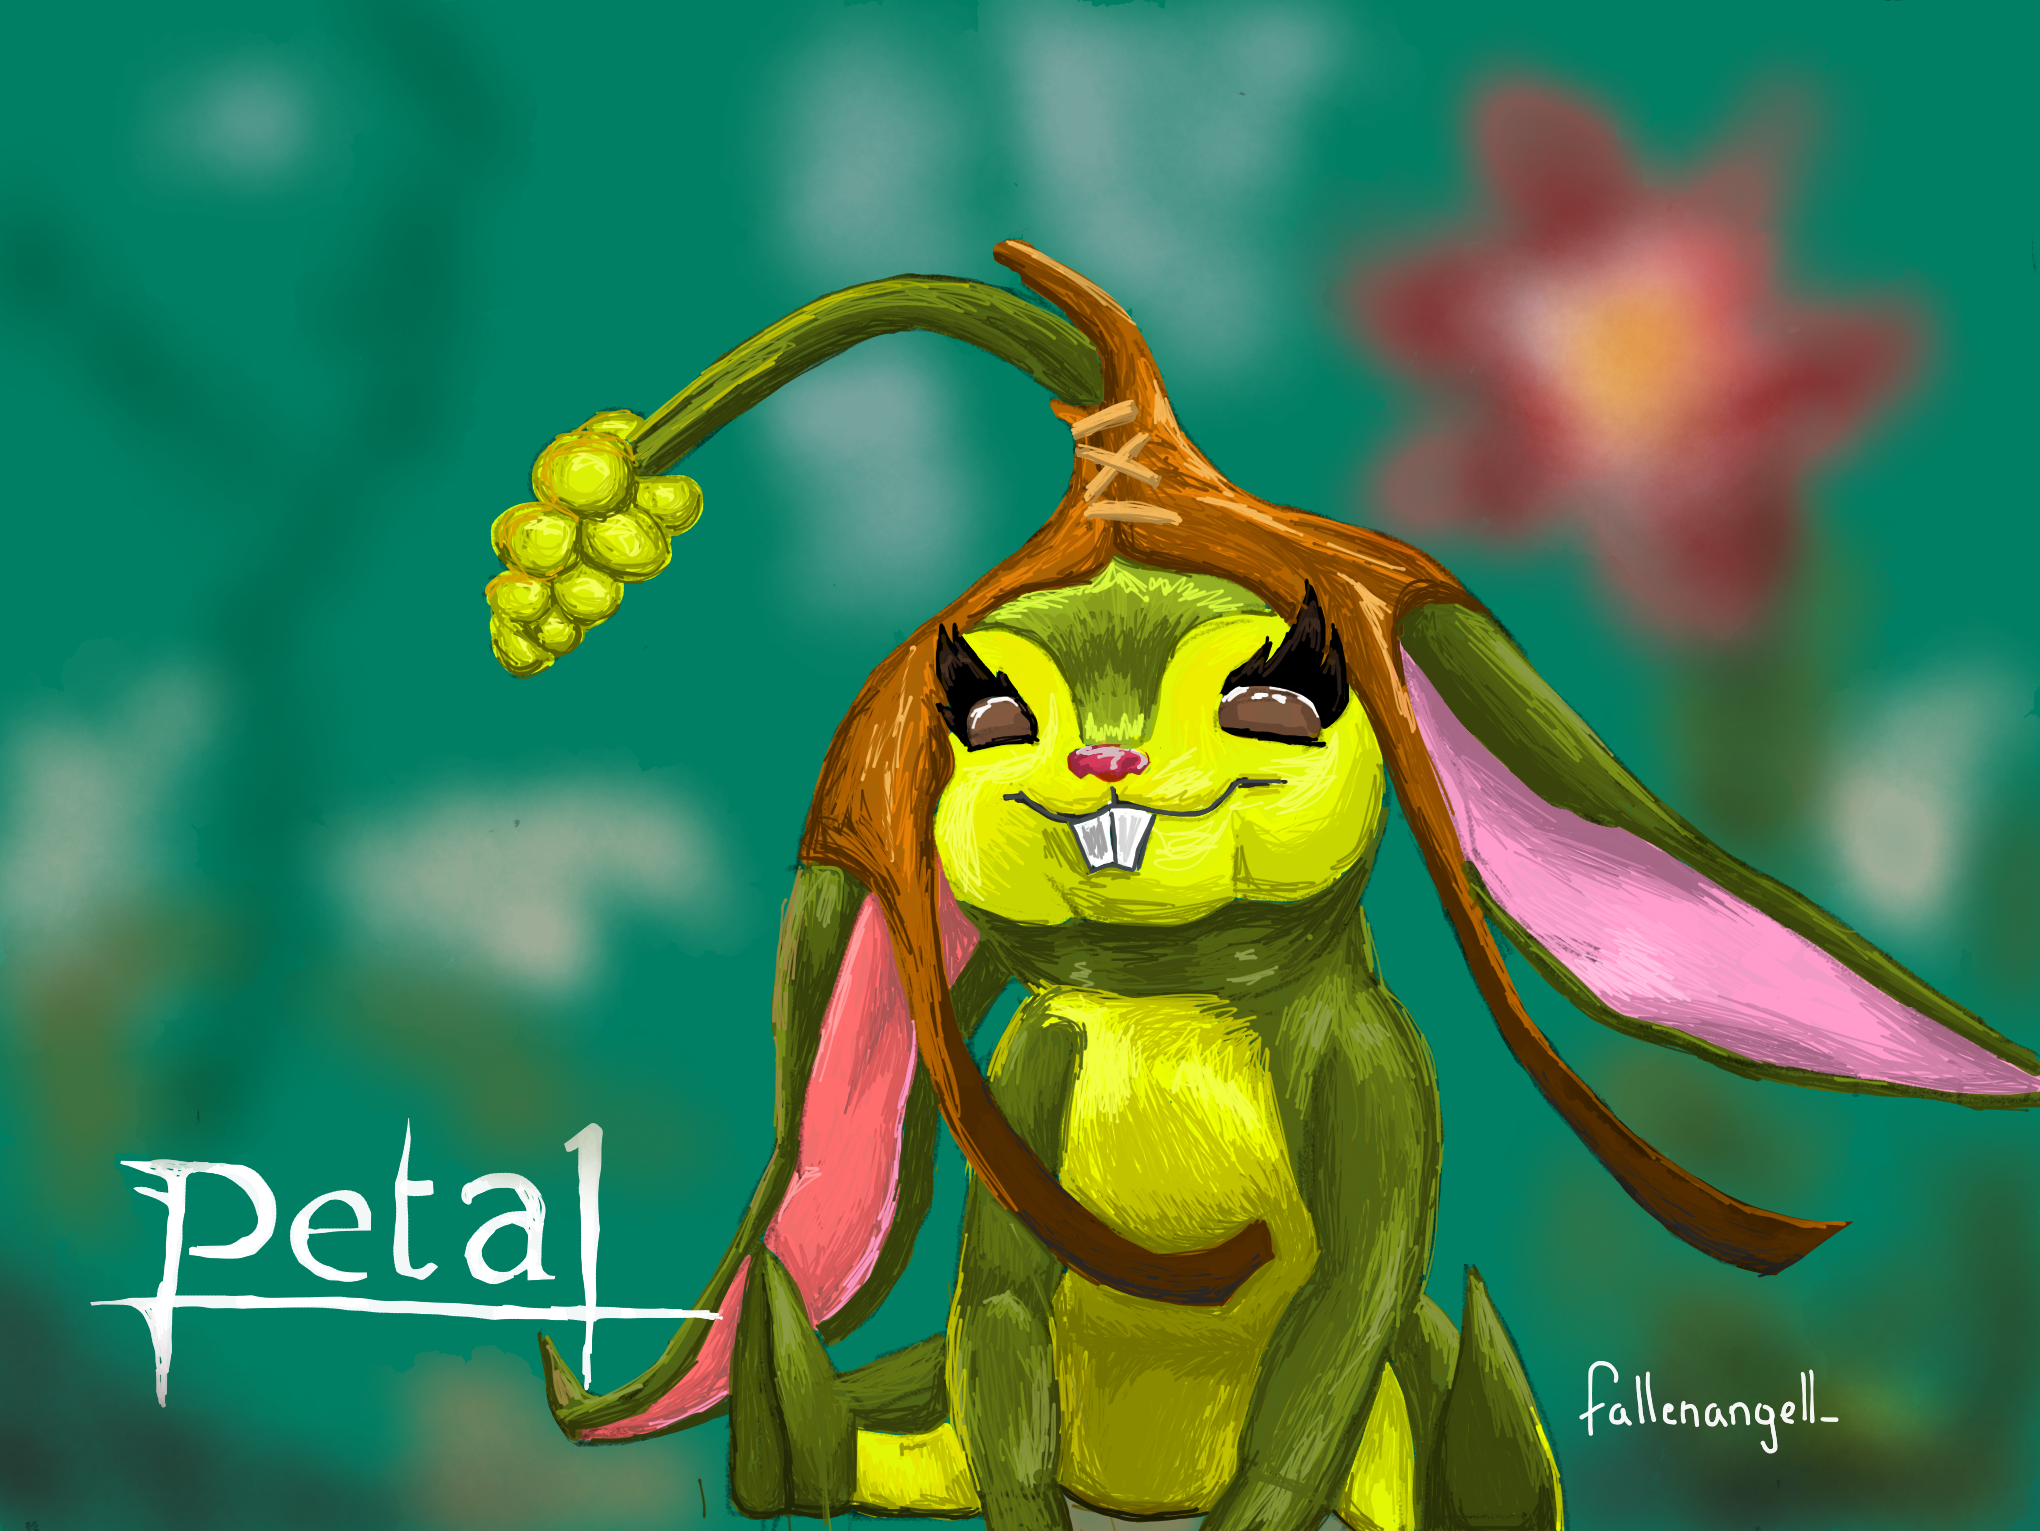 Petal from Vainglory